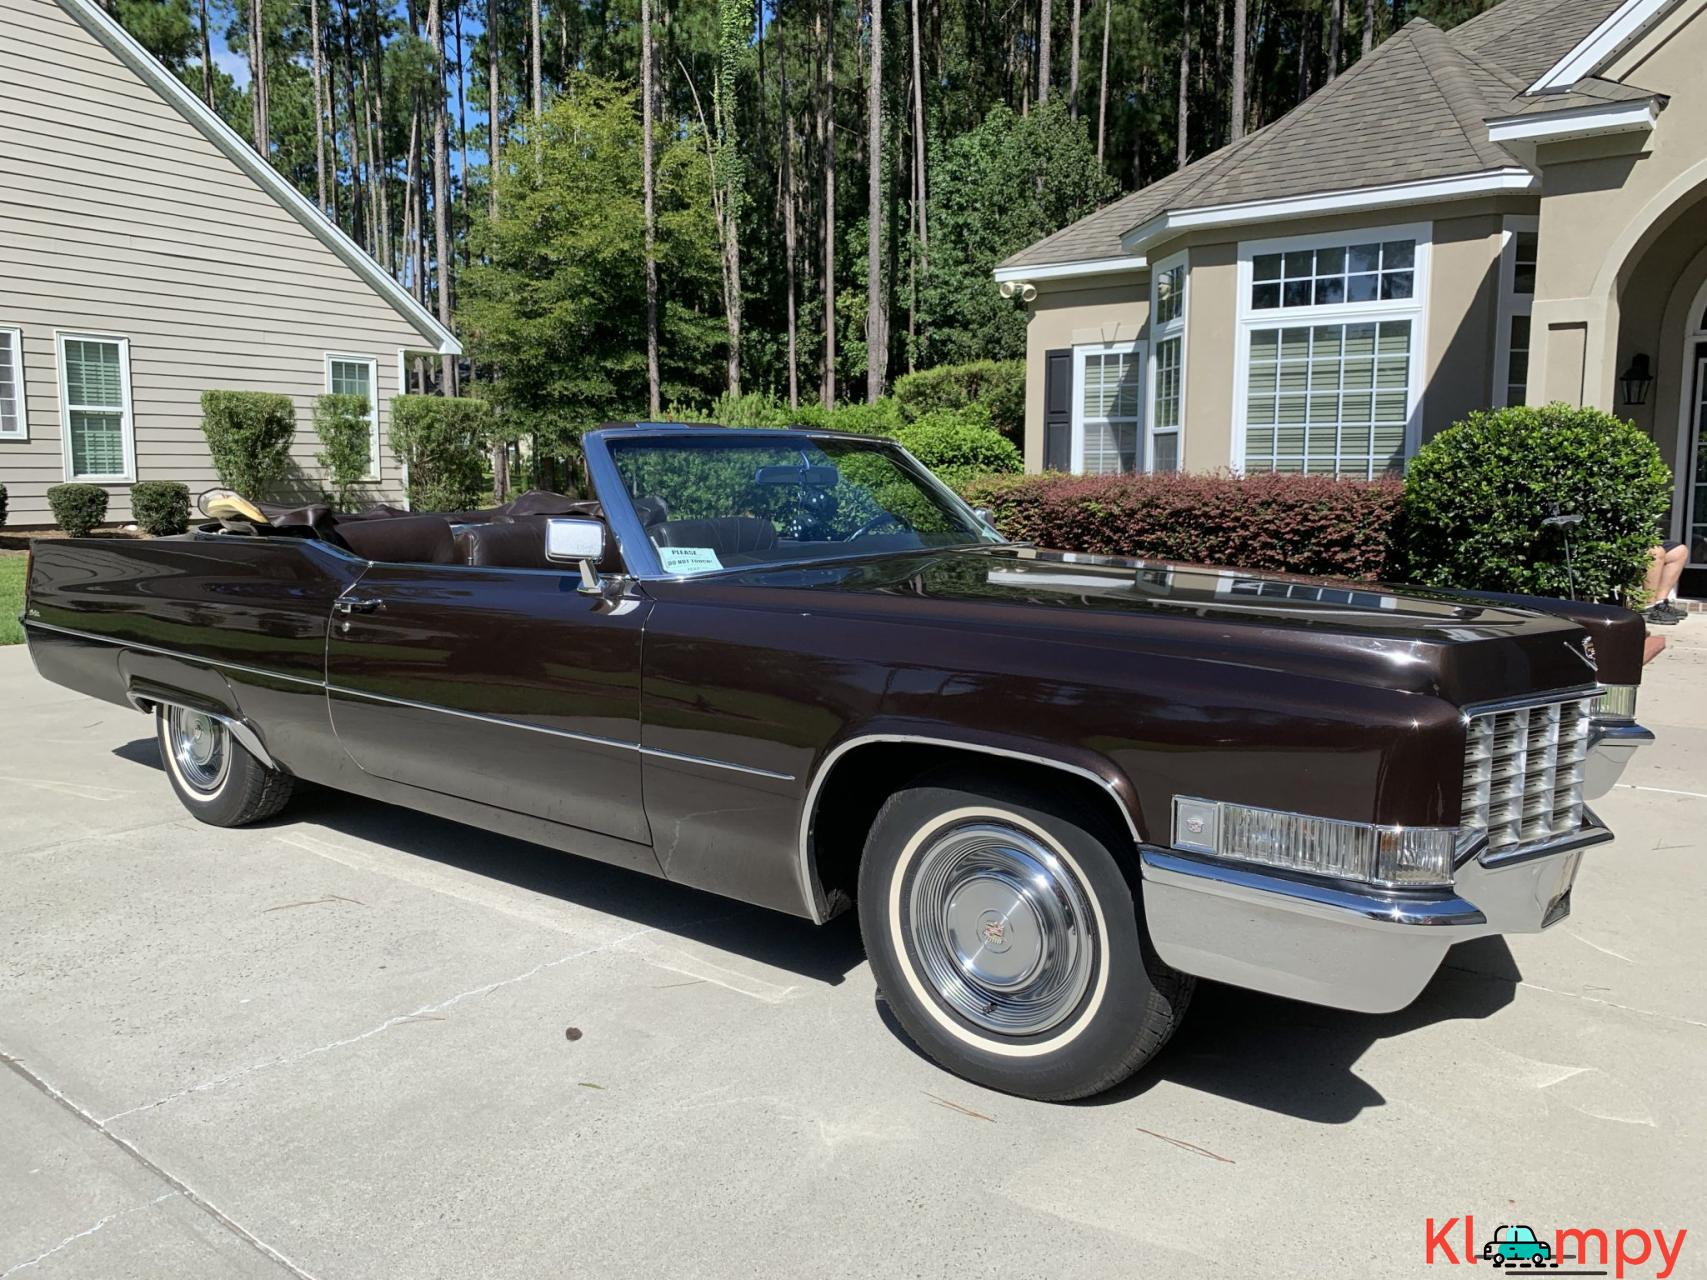 1969 Cadillac DeVille Convertible 472 3-Speed - 4/22